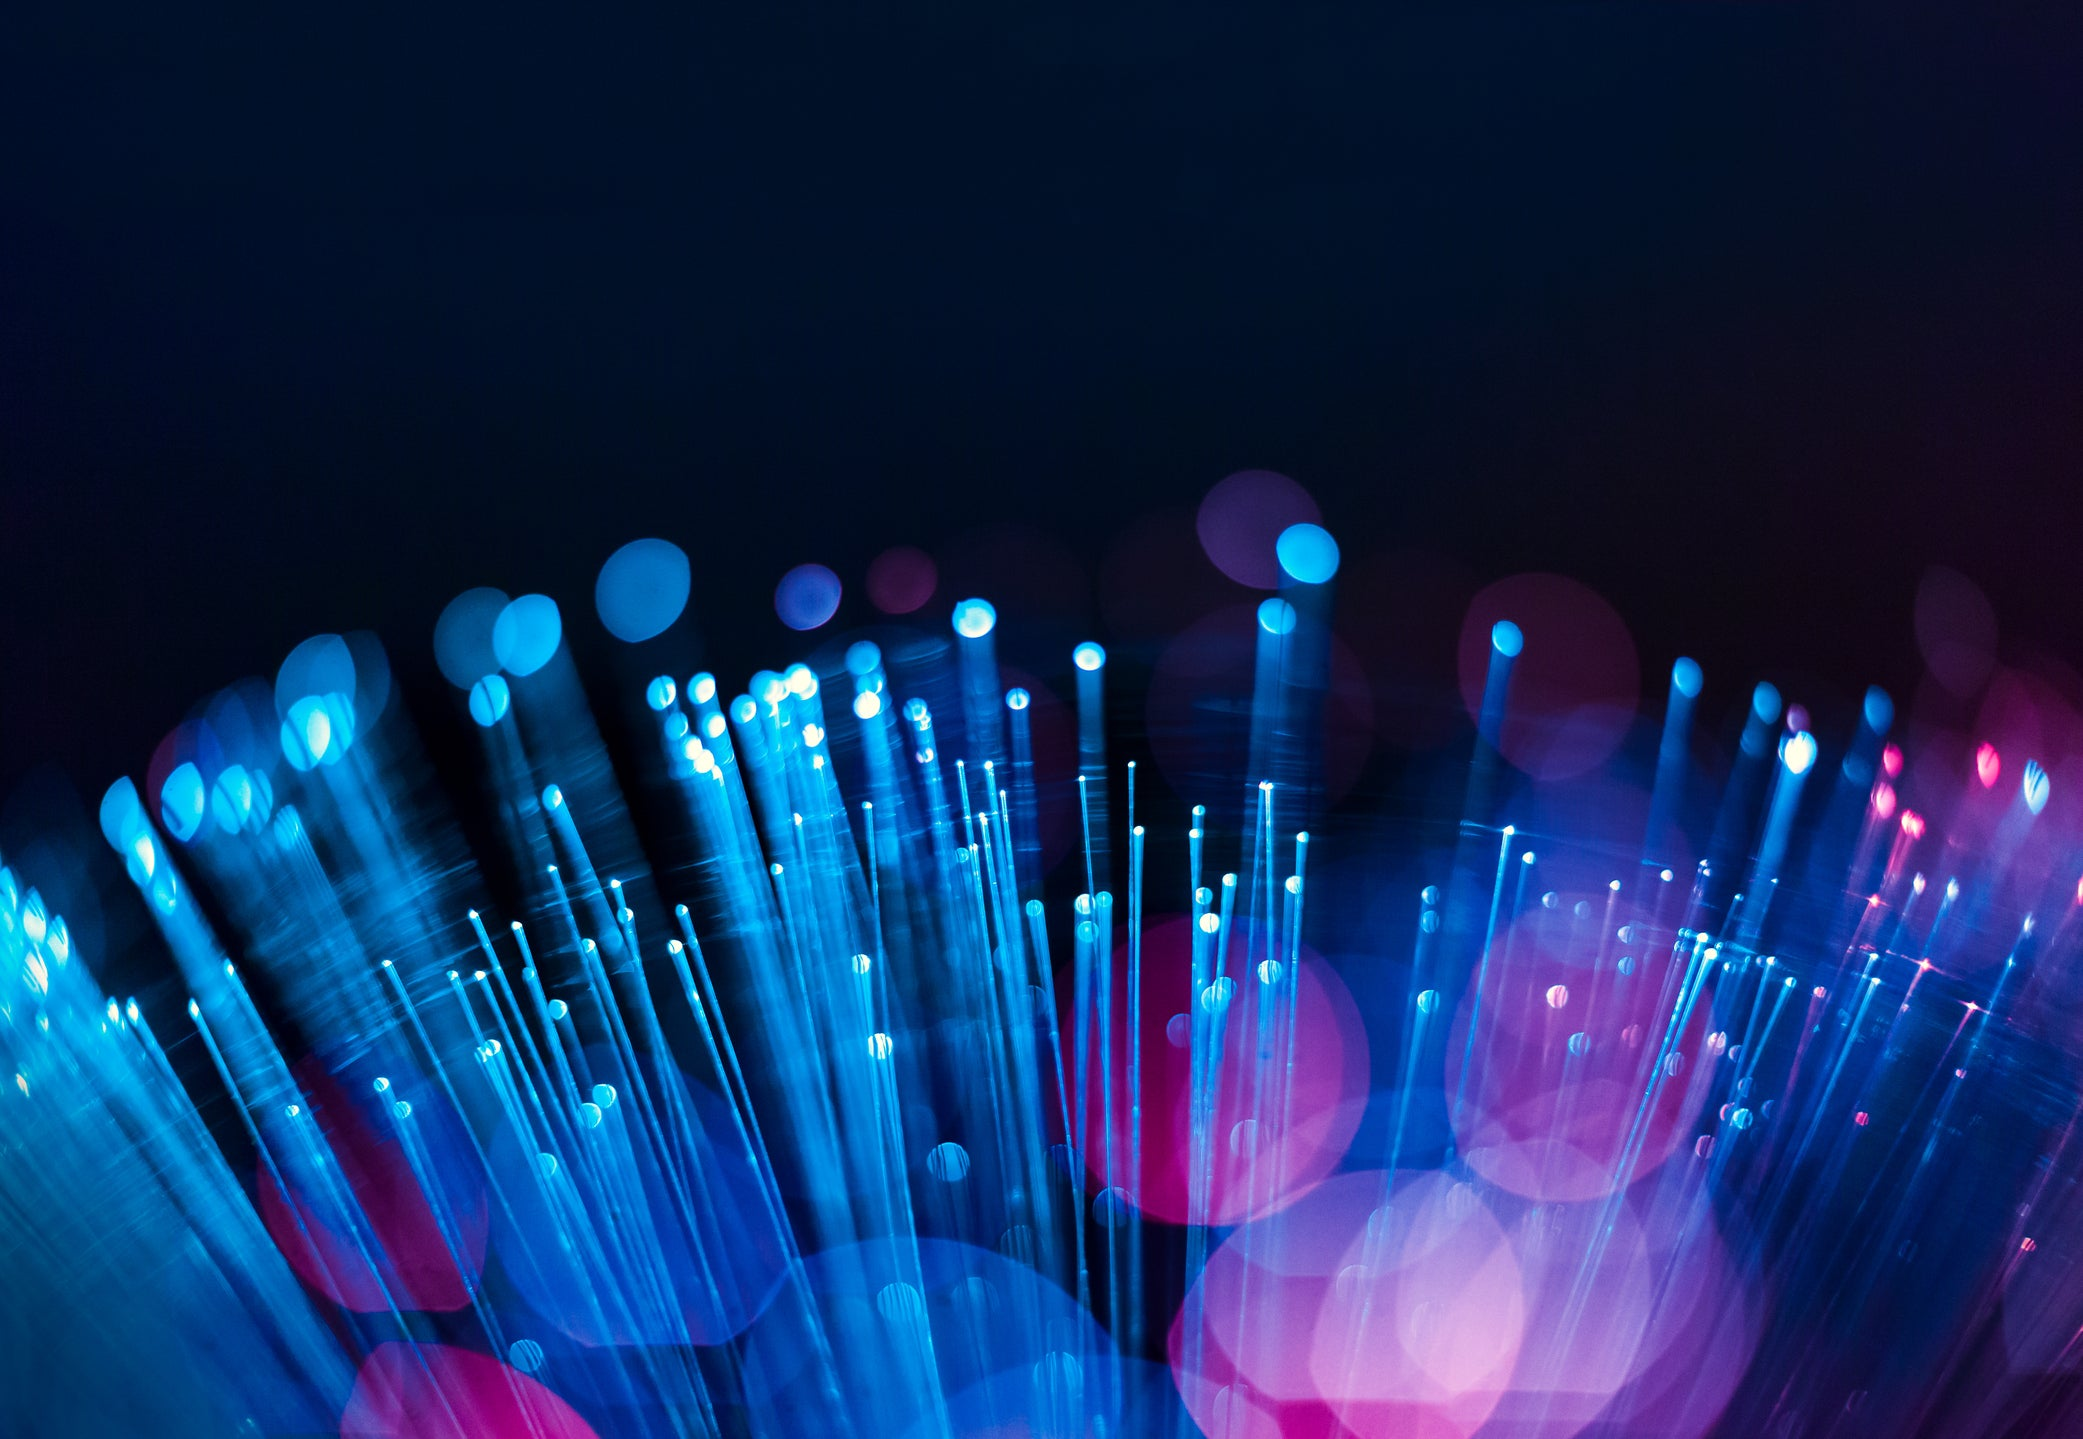 3 top american fiber-optic stocks to invest in